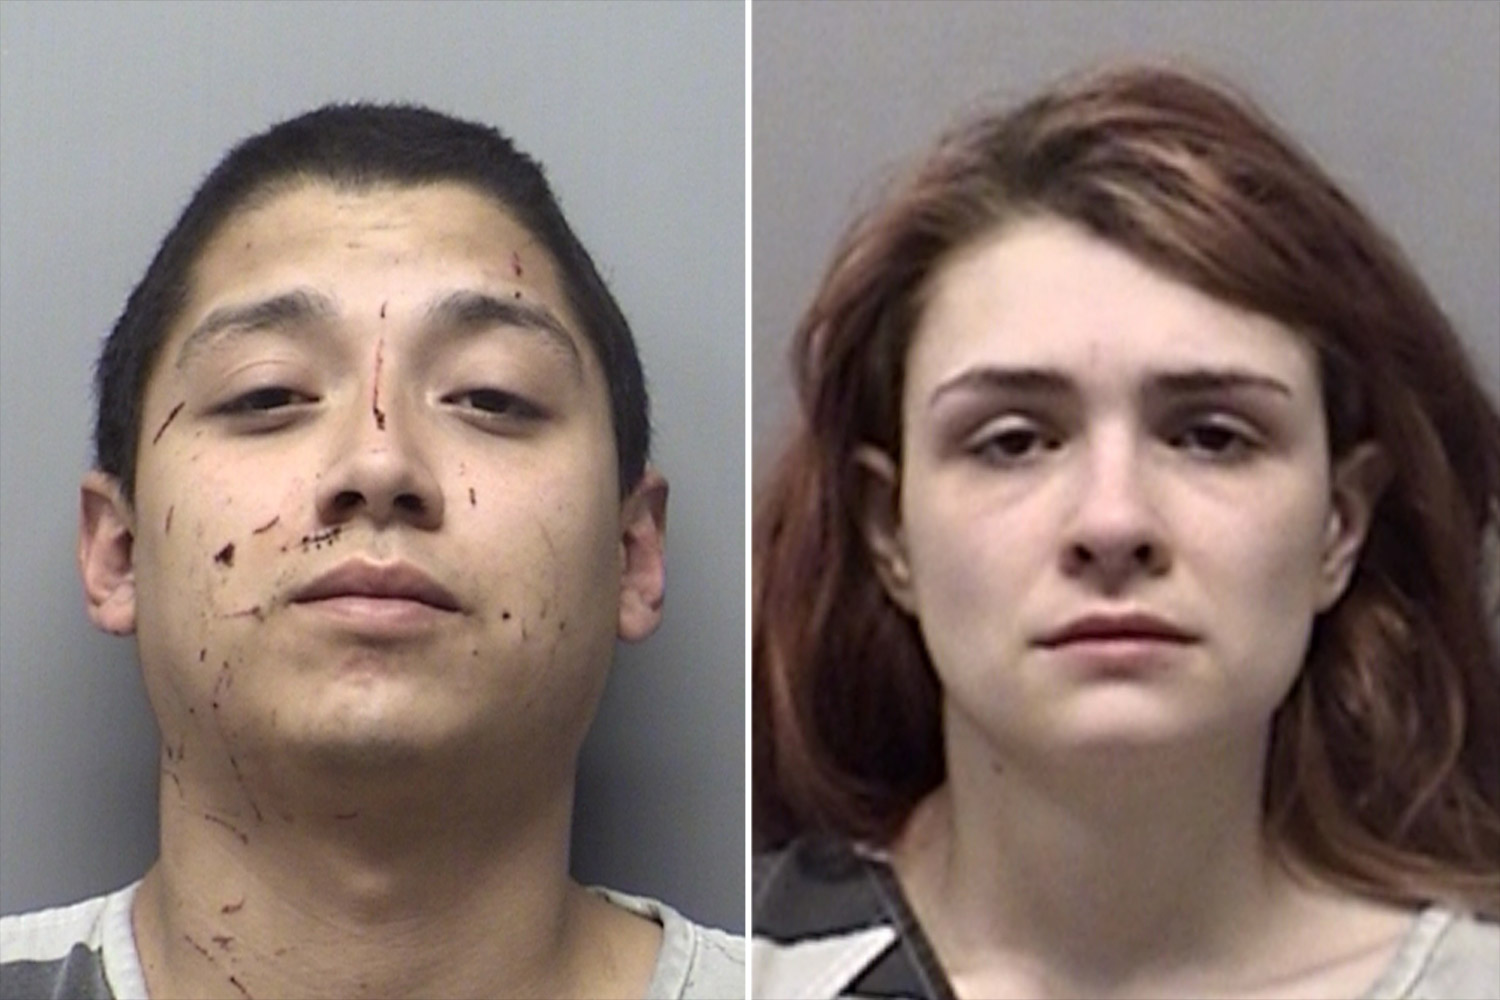 Andrew Fabila and Paige HarkingsCredit: Wise County Sheriff's Office